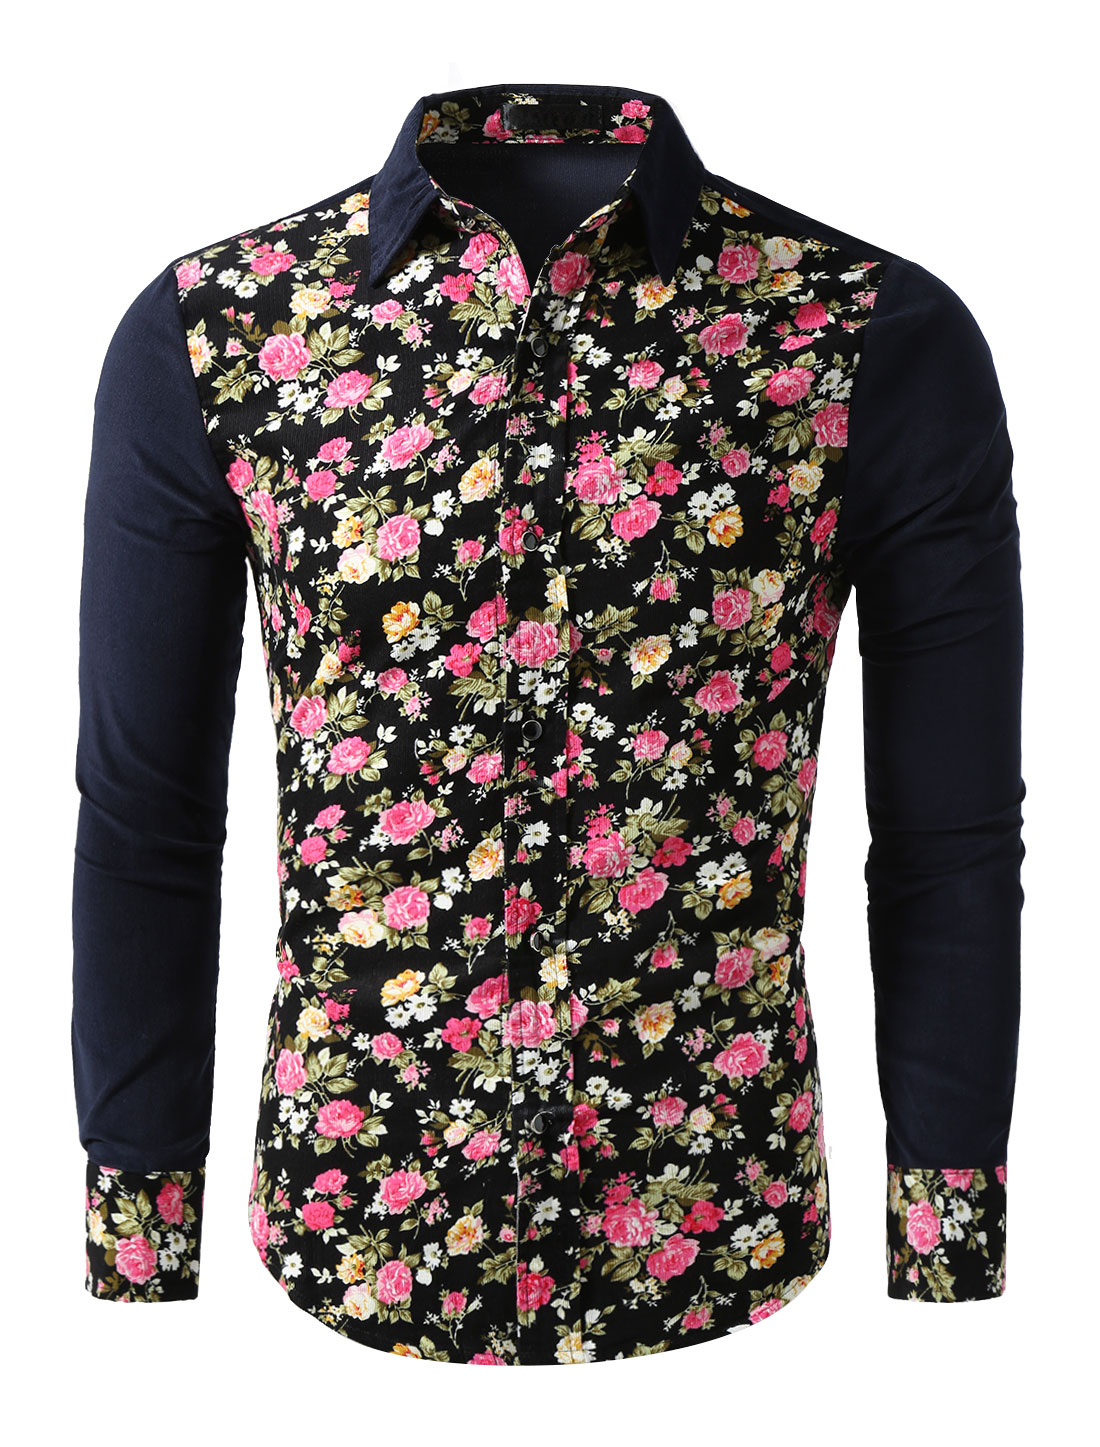 Men Point Collar Long Sleeves Floral Corduroy Shirt Black L